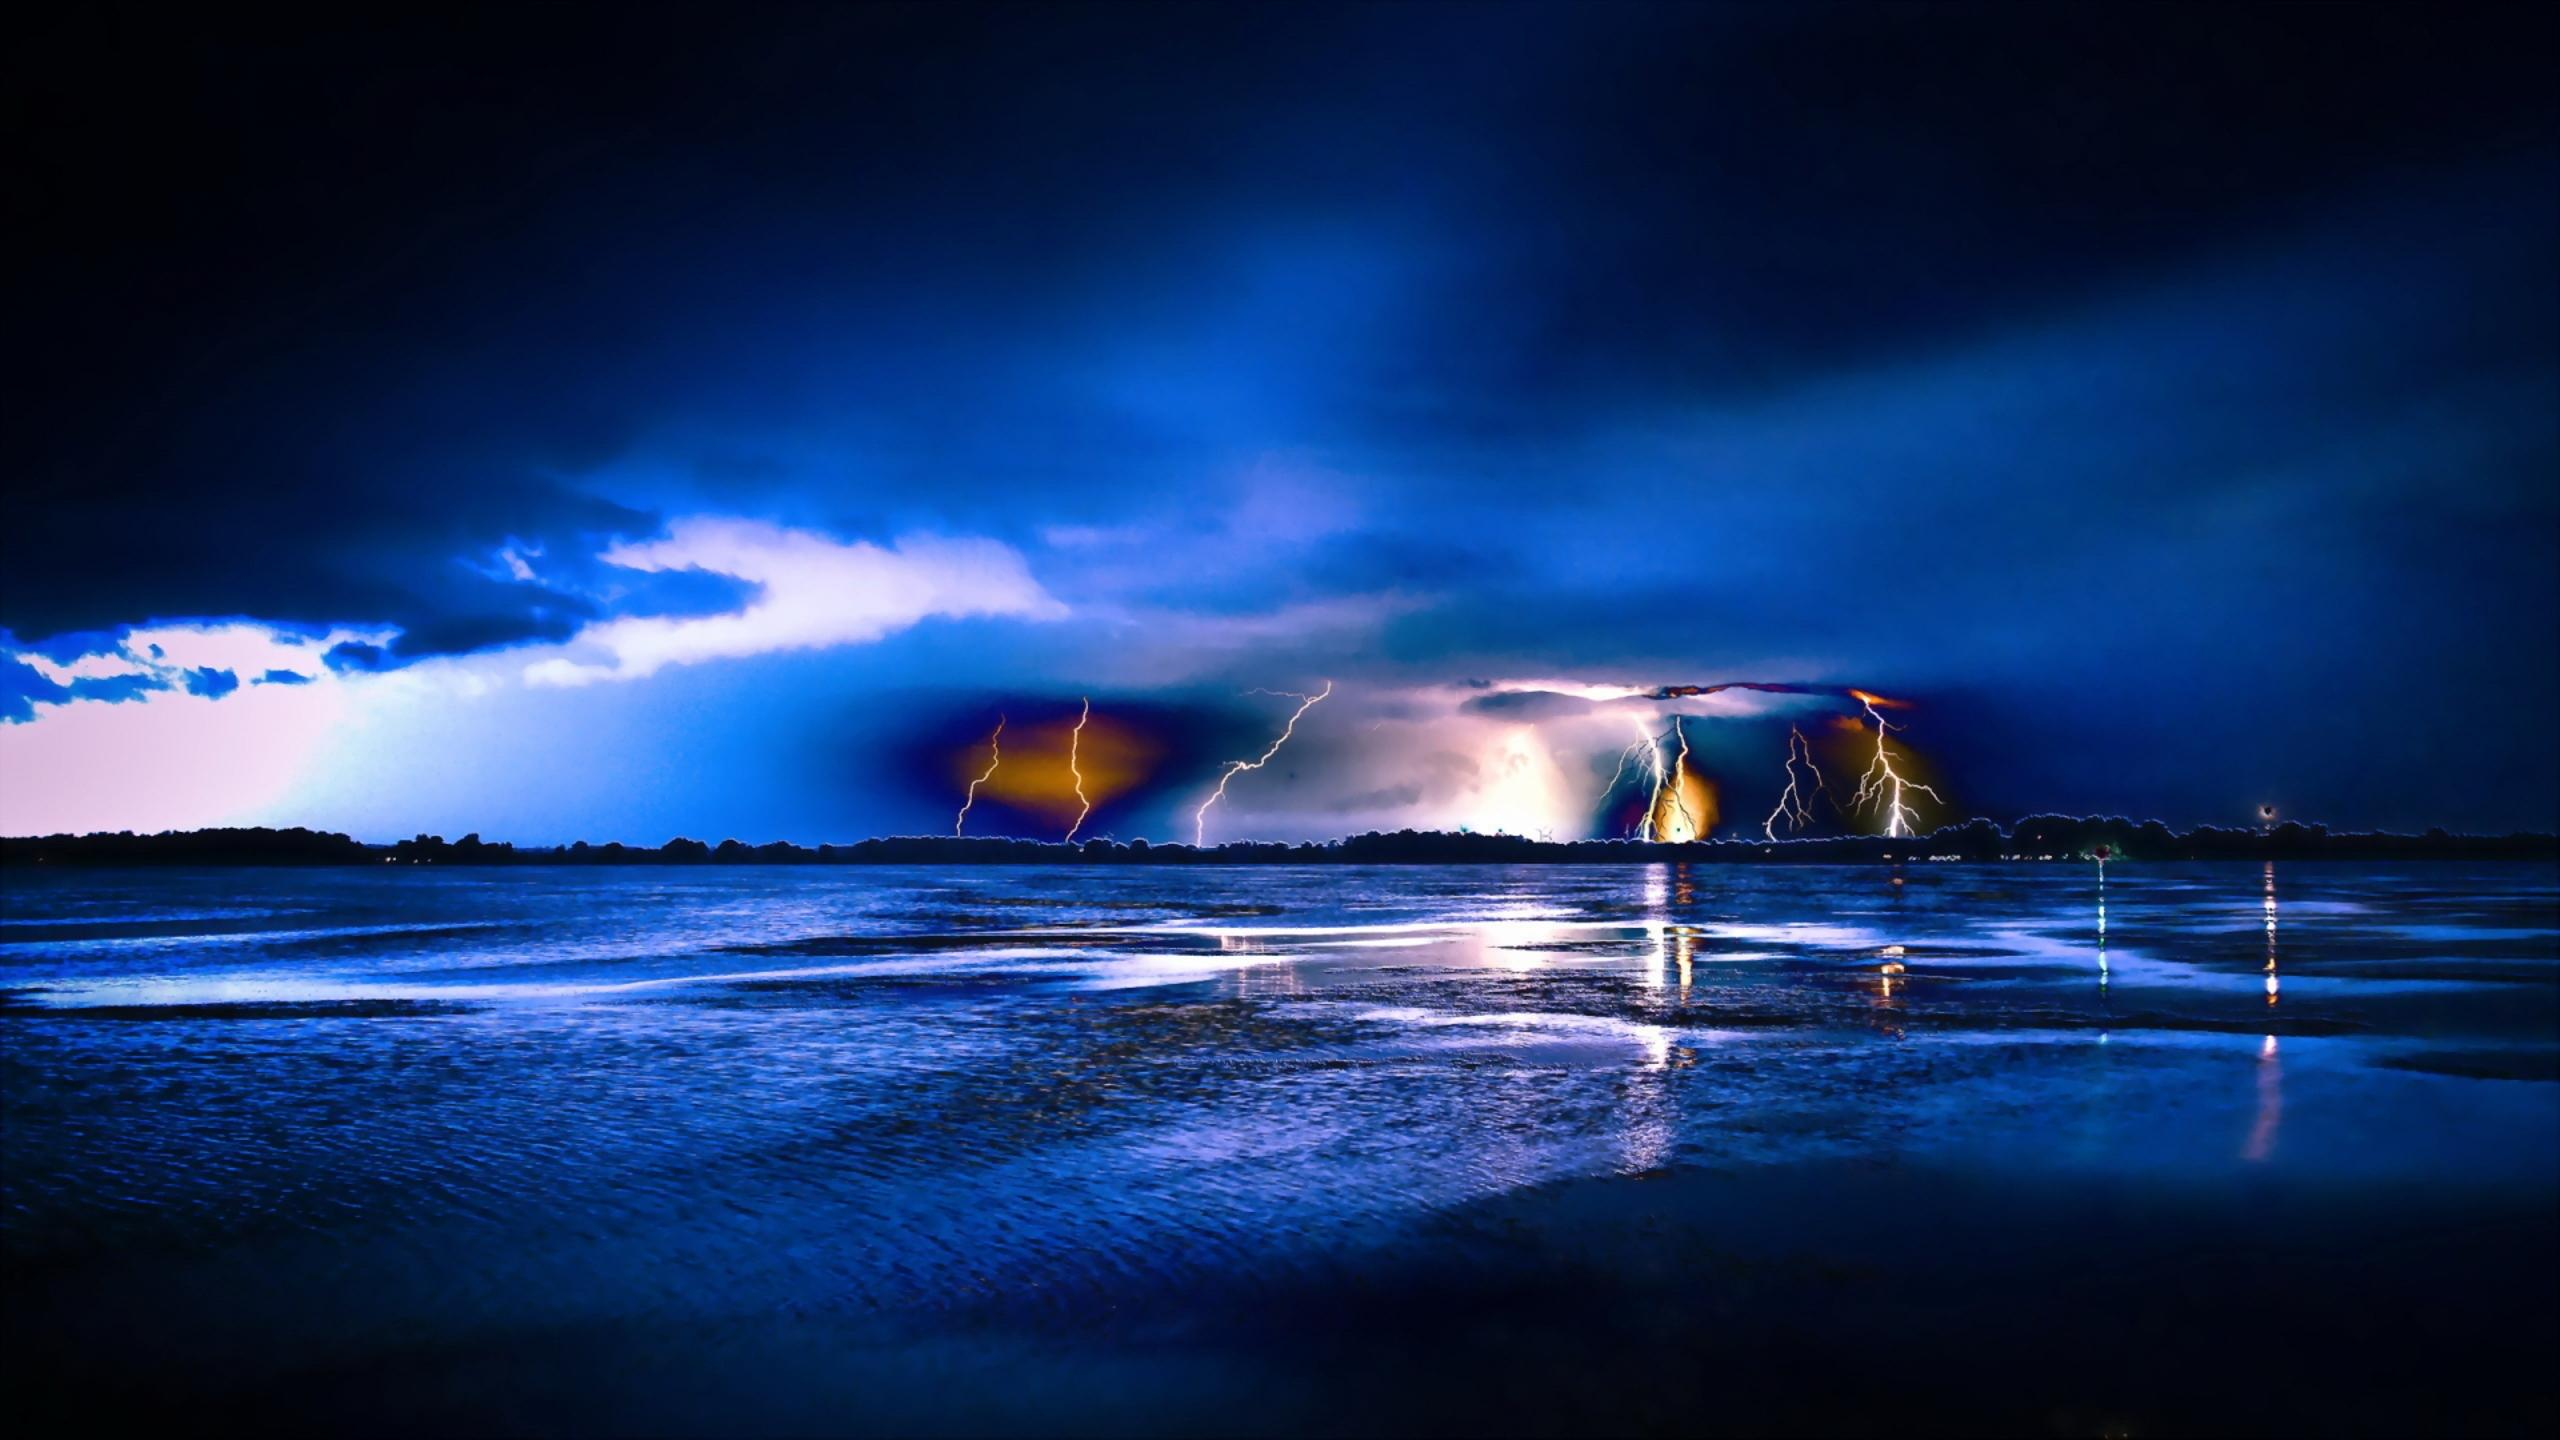 Download Wallpaper 2560x1440 Lightning Lights Over The Sea At Night